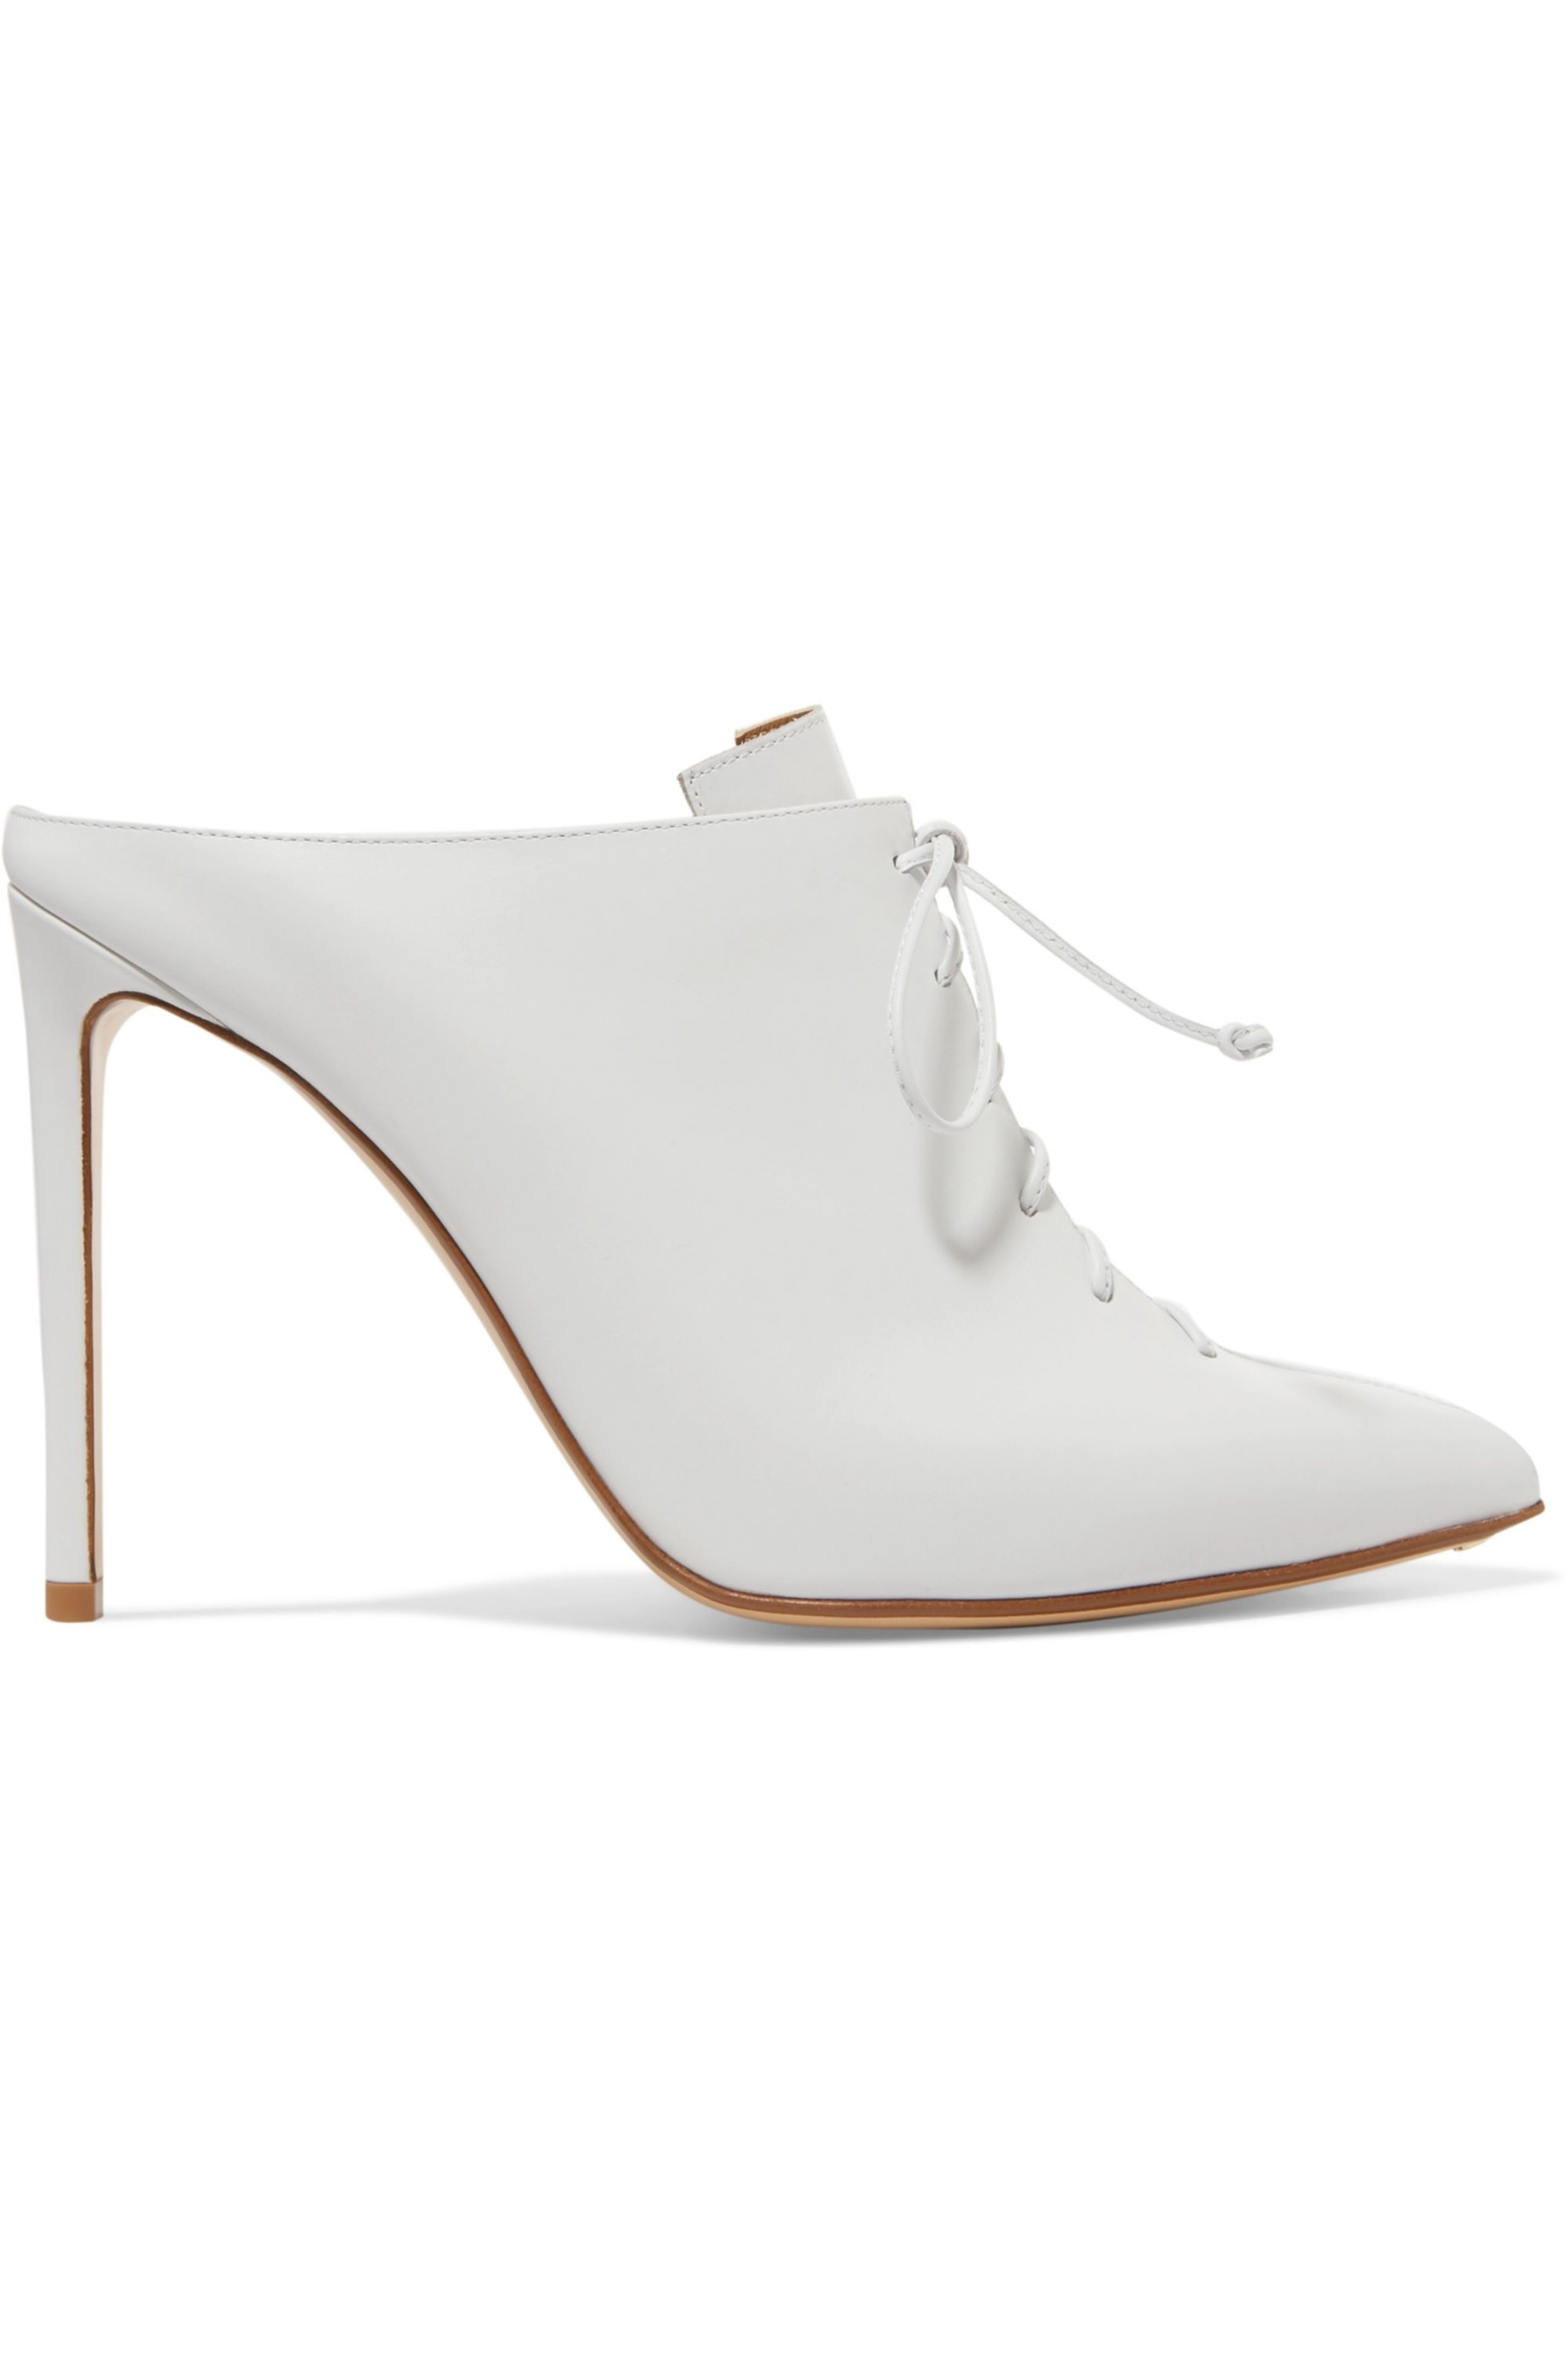 Francesco Russo Lace-up leather mules